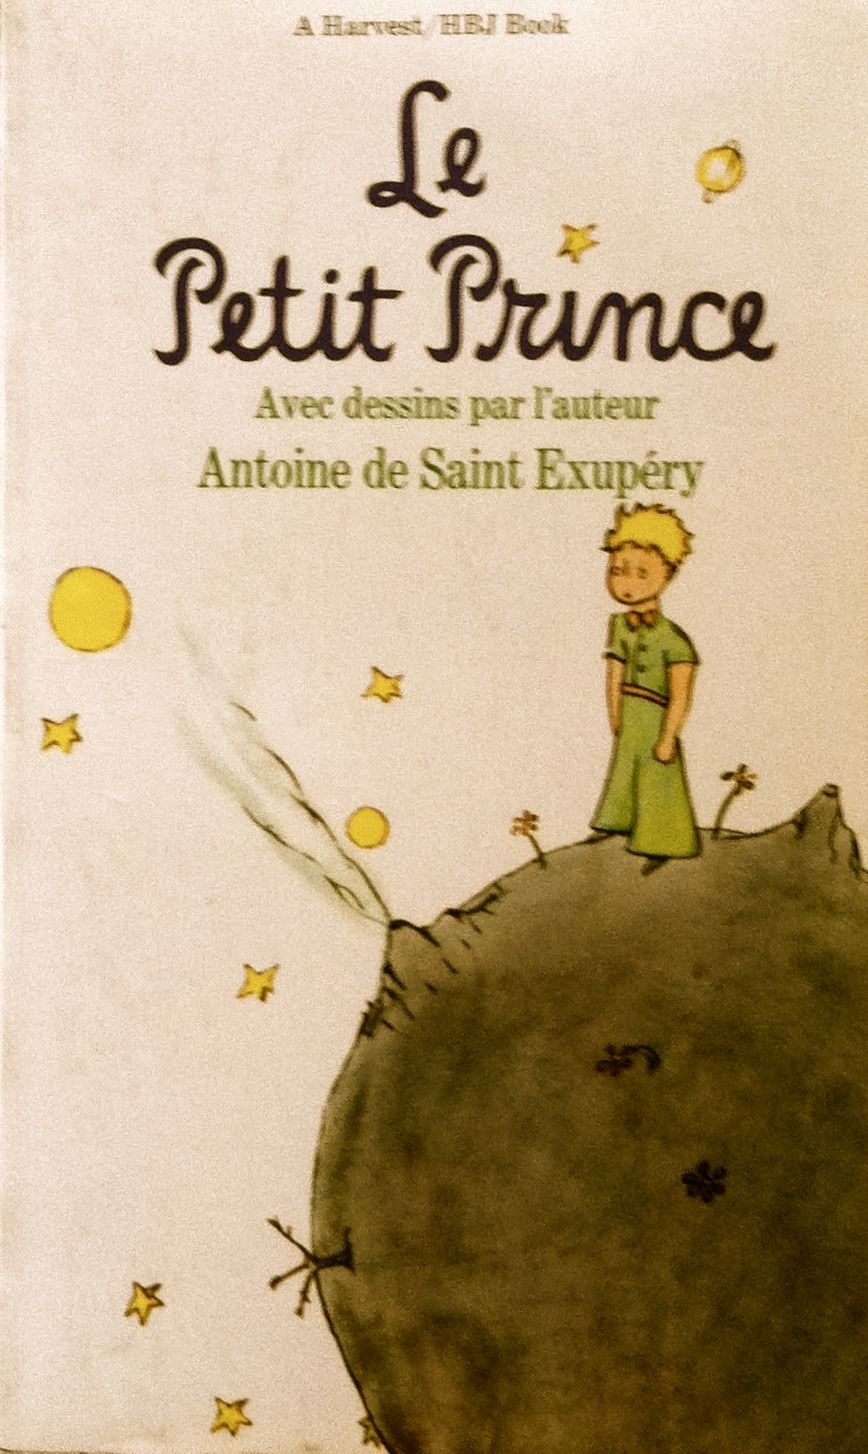 A Classic Le Petit Prince By Antoine De Saint Exupery The Little Prince Book Worth Reading Books To Read